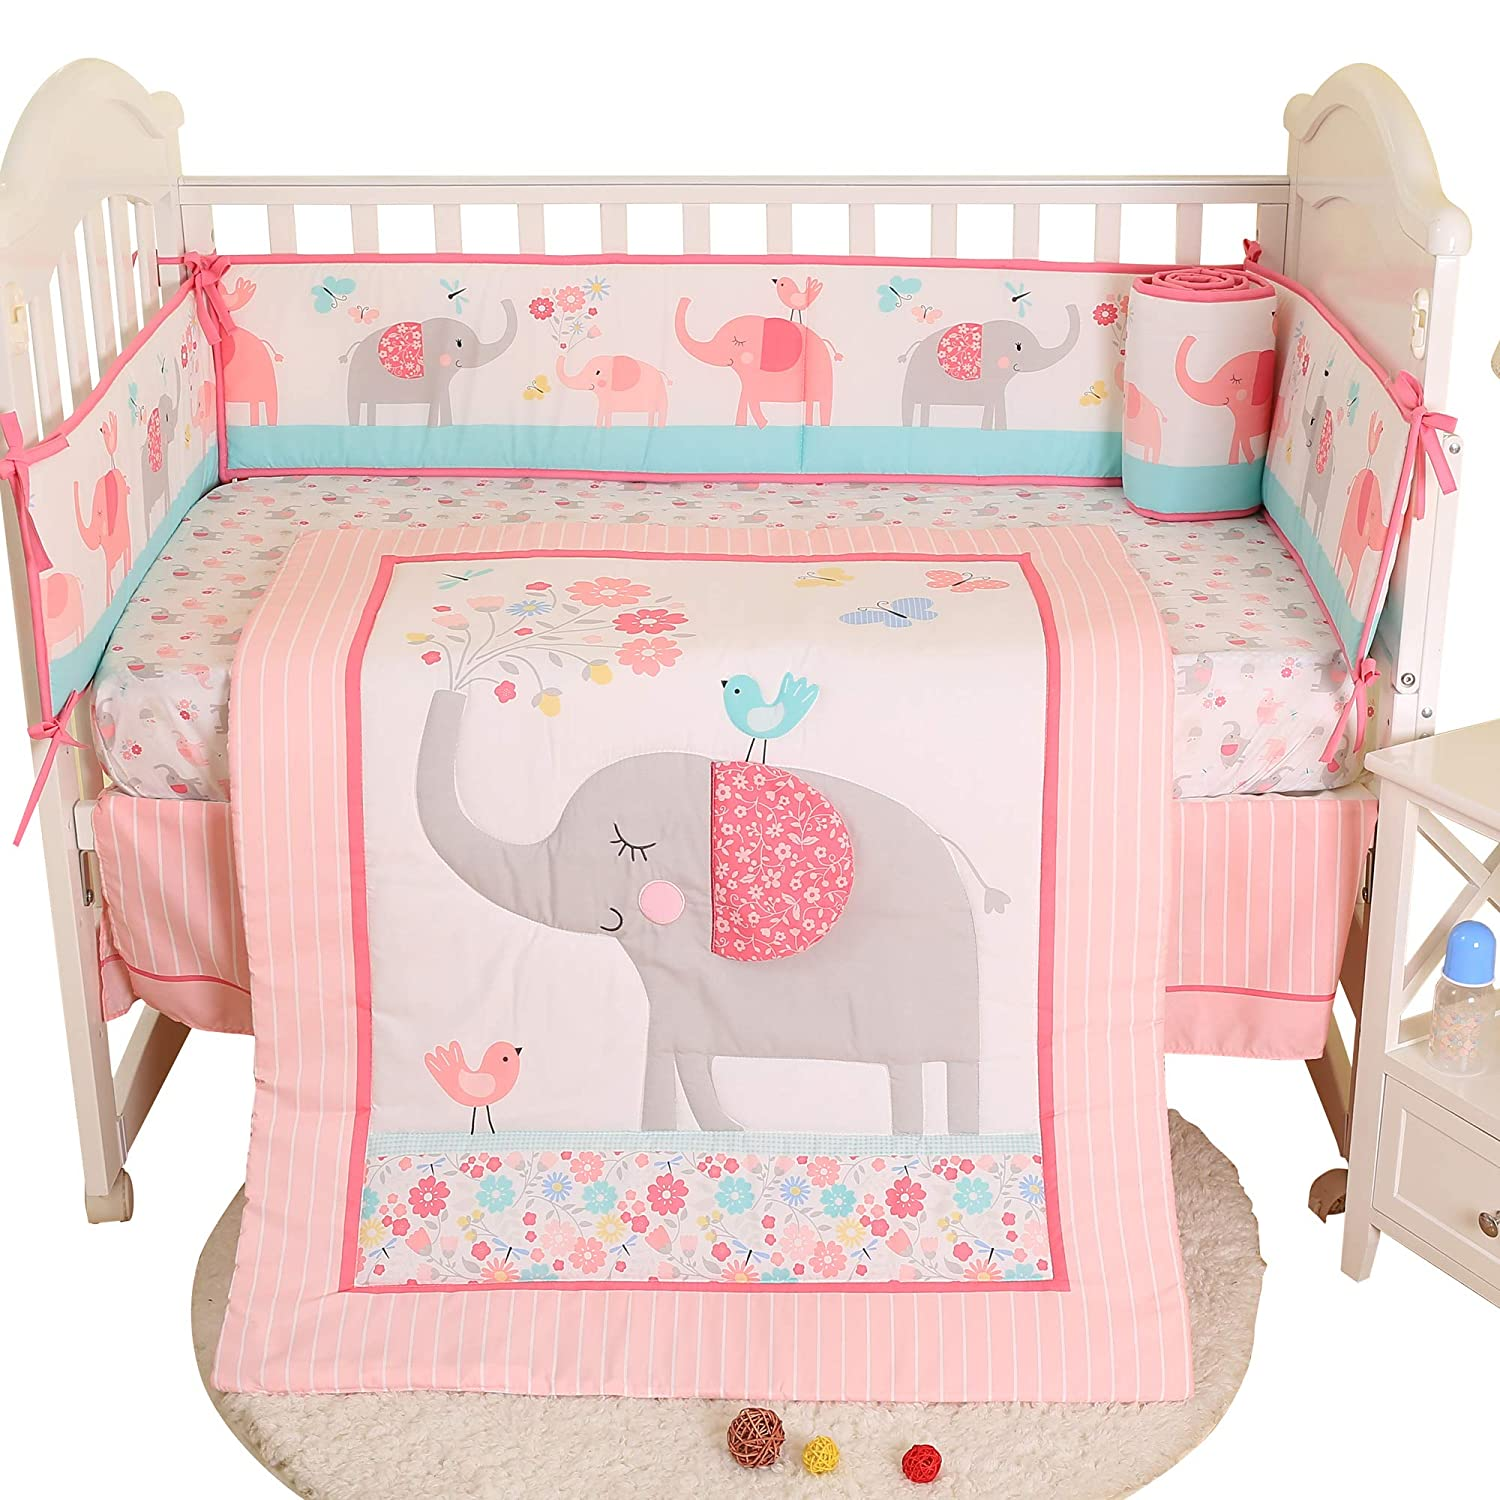 Brandream Crib Bedding Sets for Girls with Bumper Pads Butterfly Birds Floral Elephant Baby Nursery Bedding Sets,7pcs